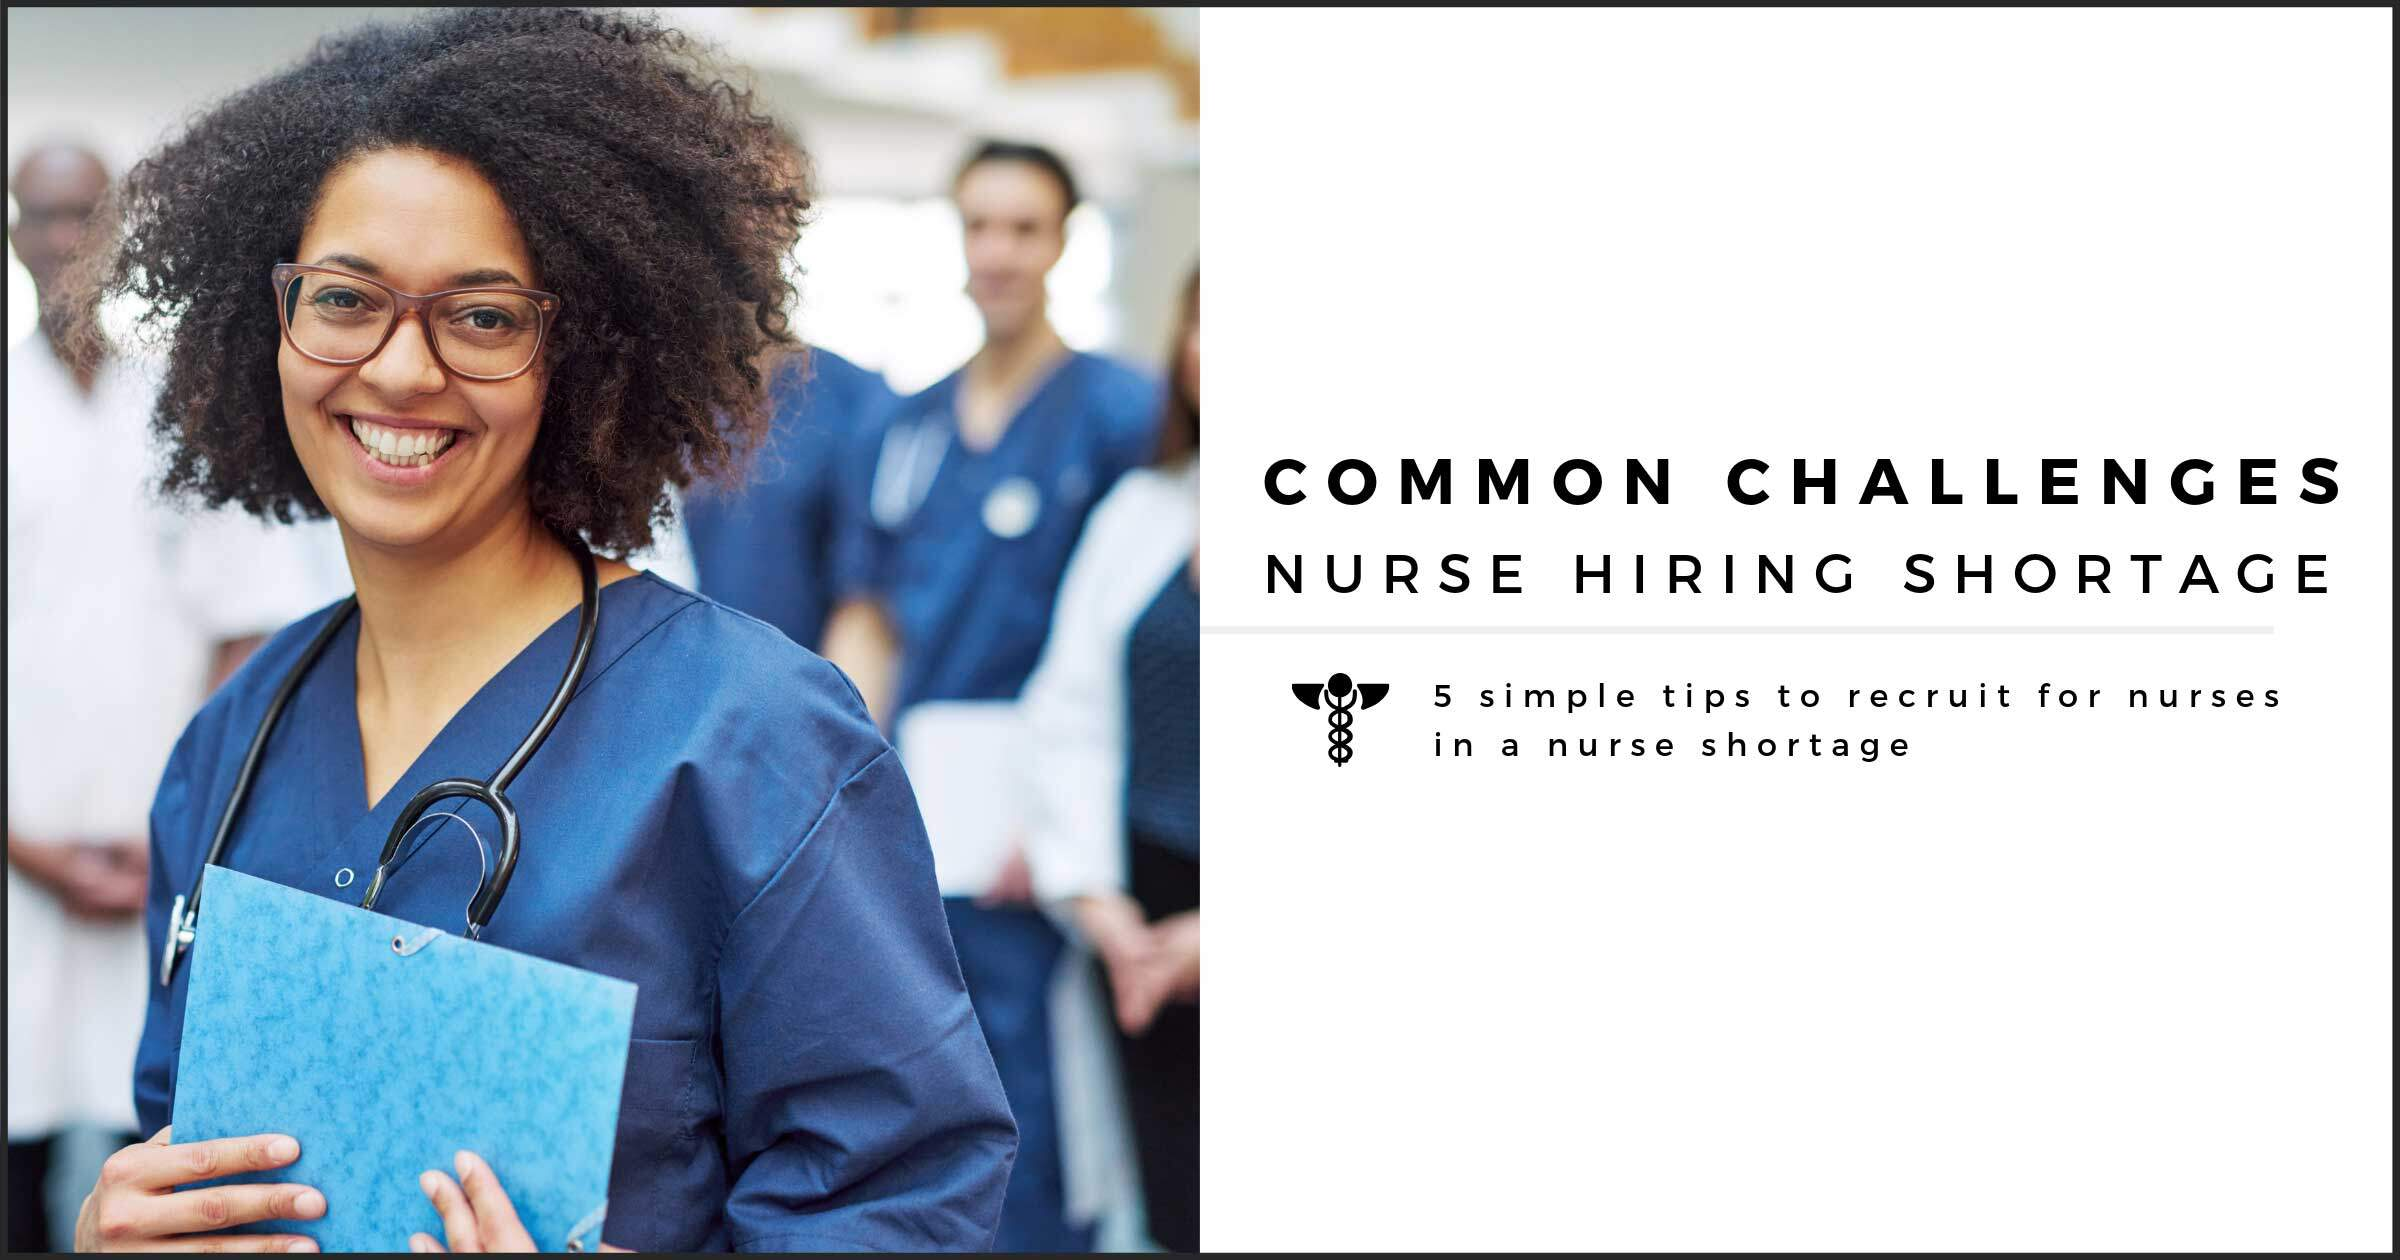 How to Hire Nurses in a Hiring Shortage